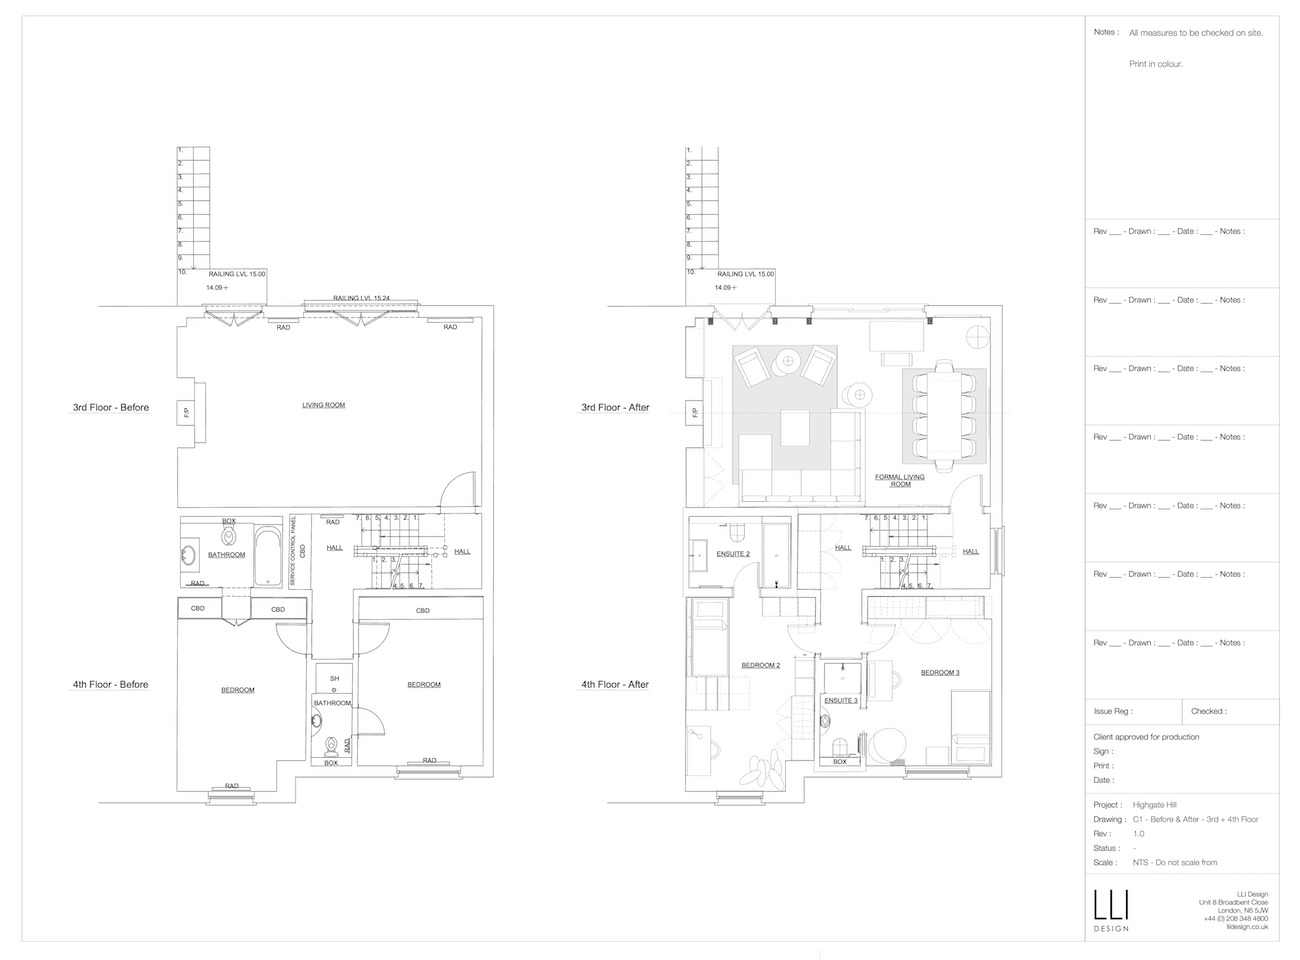 Floor plan for 3rd and 4th floors of townhouse before and after a renovation.